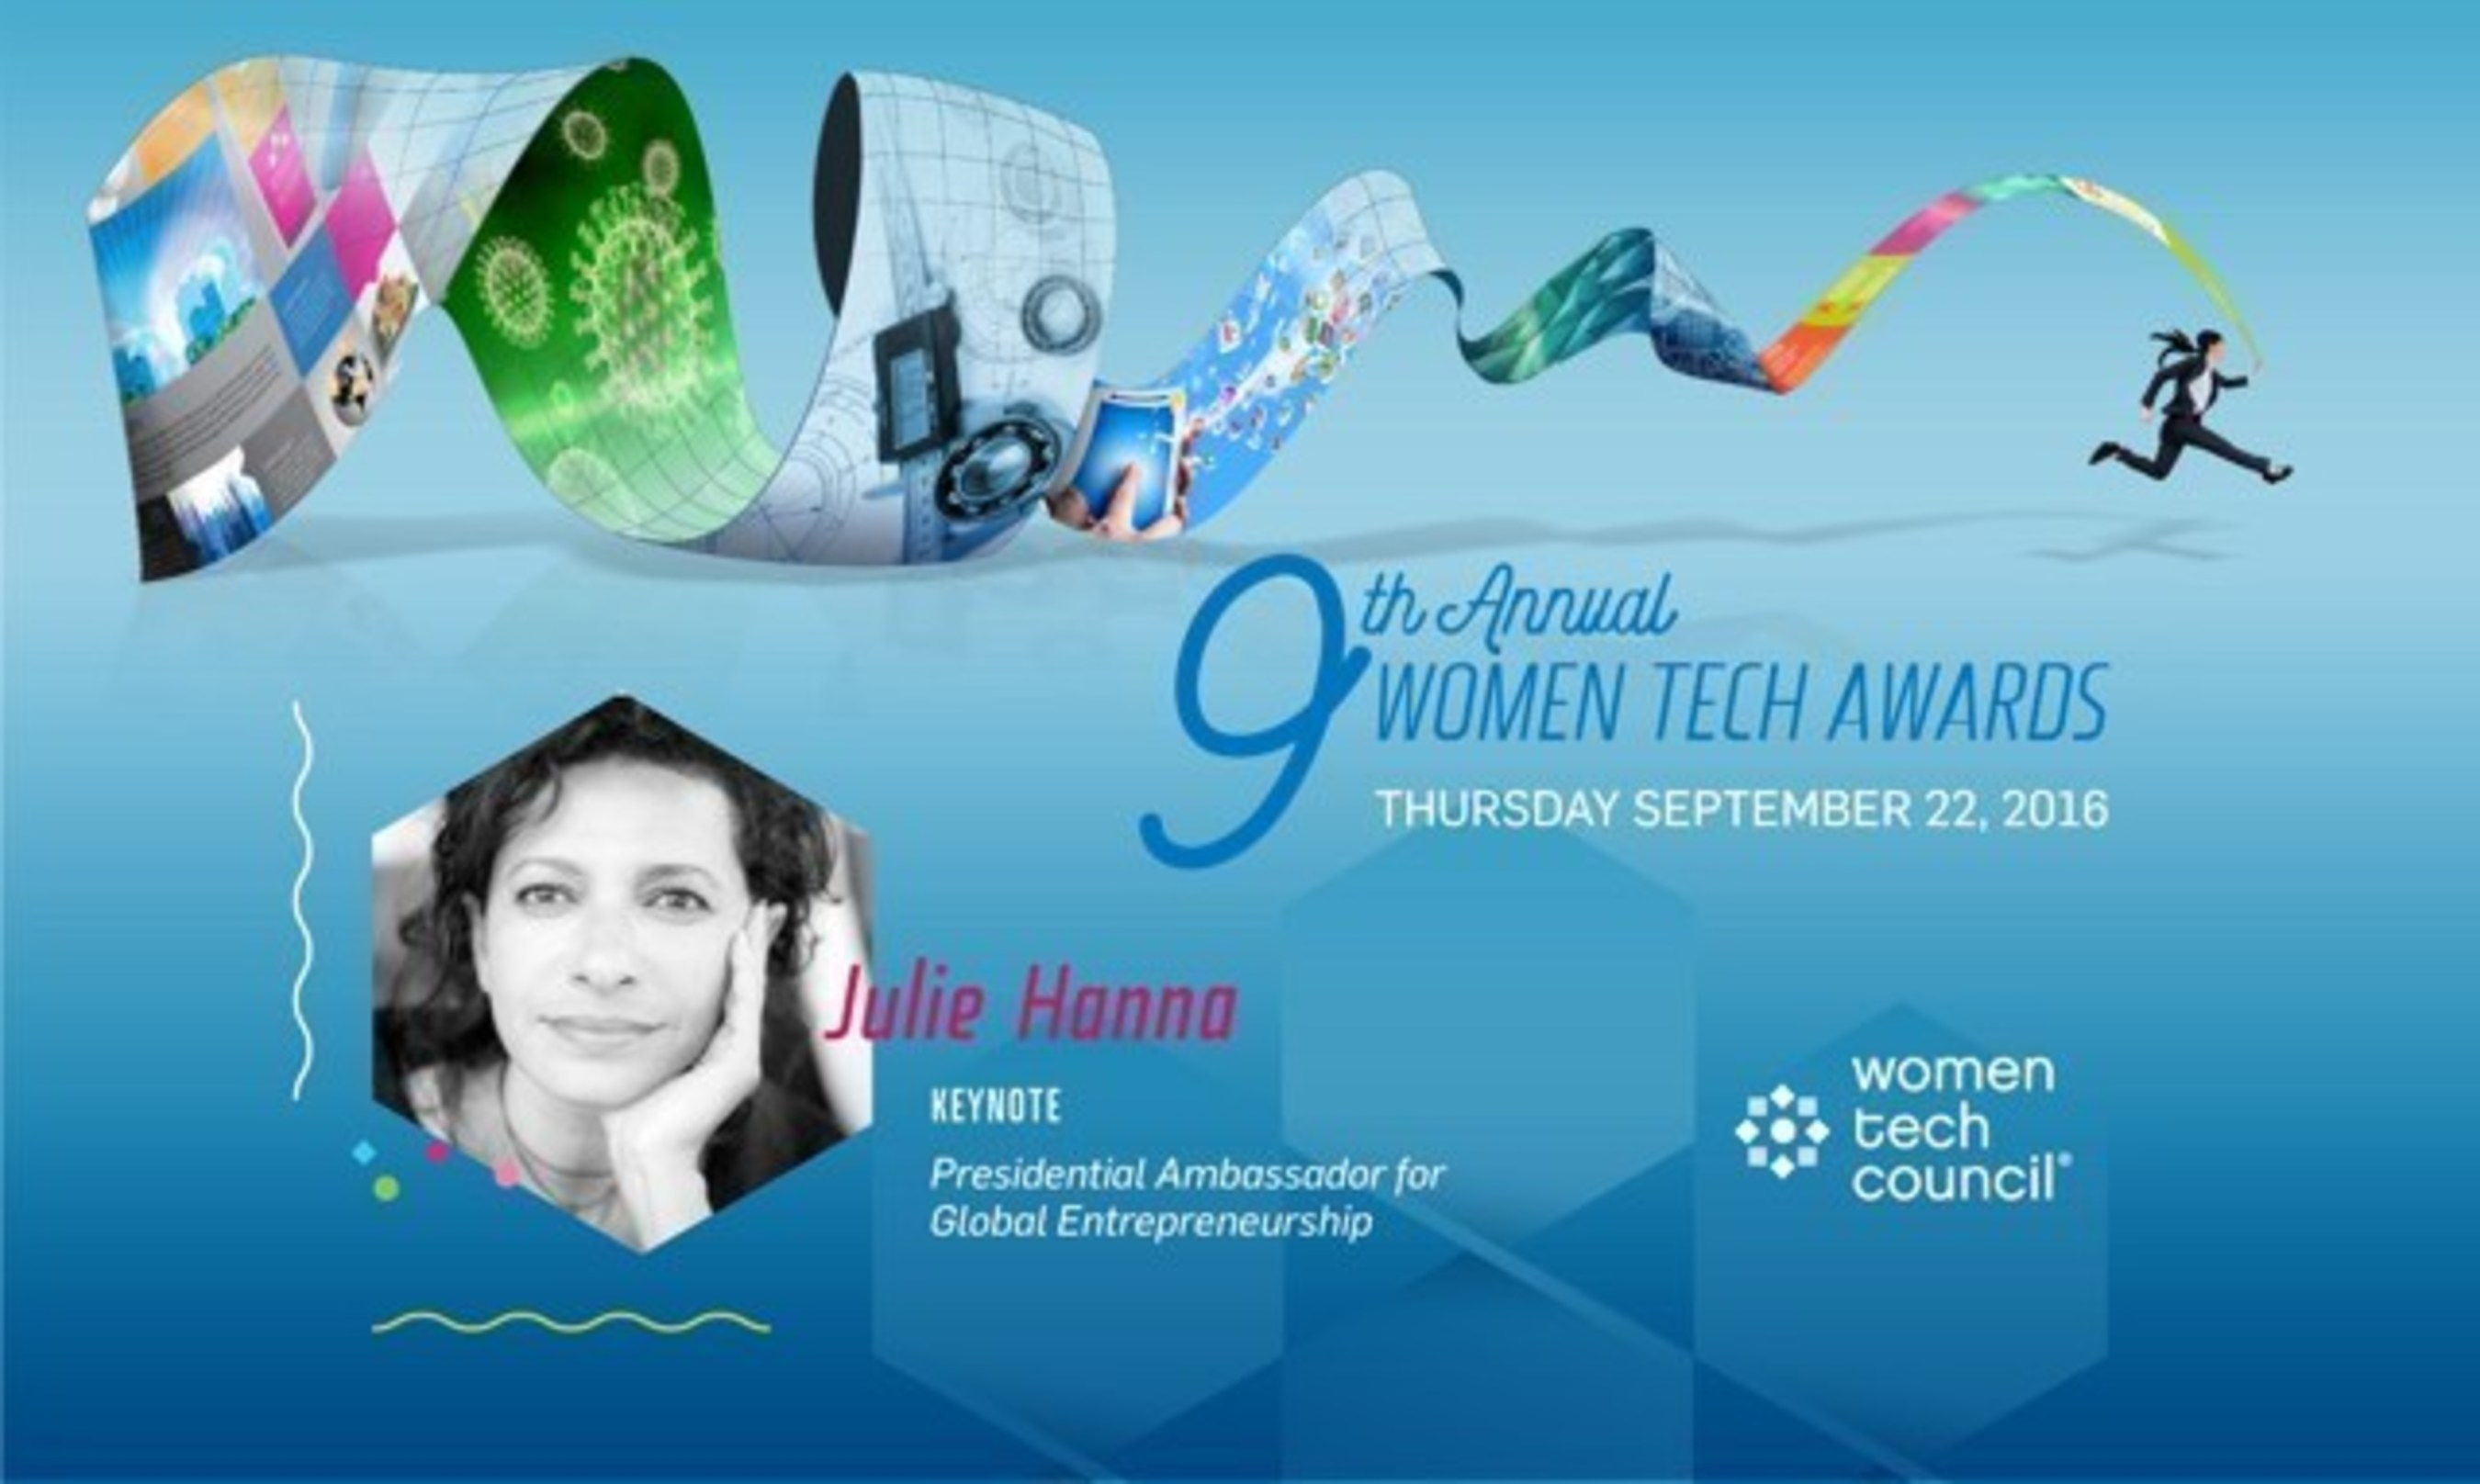 WTC_Women_Tech_Awards_Julie_Hanna